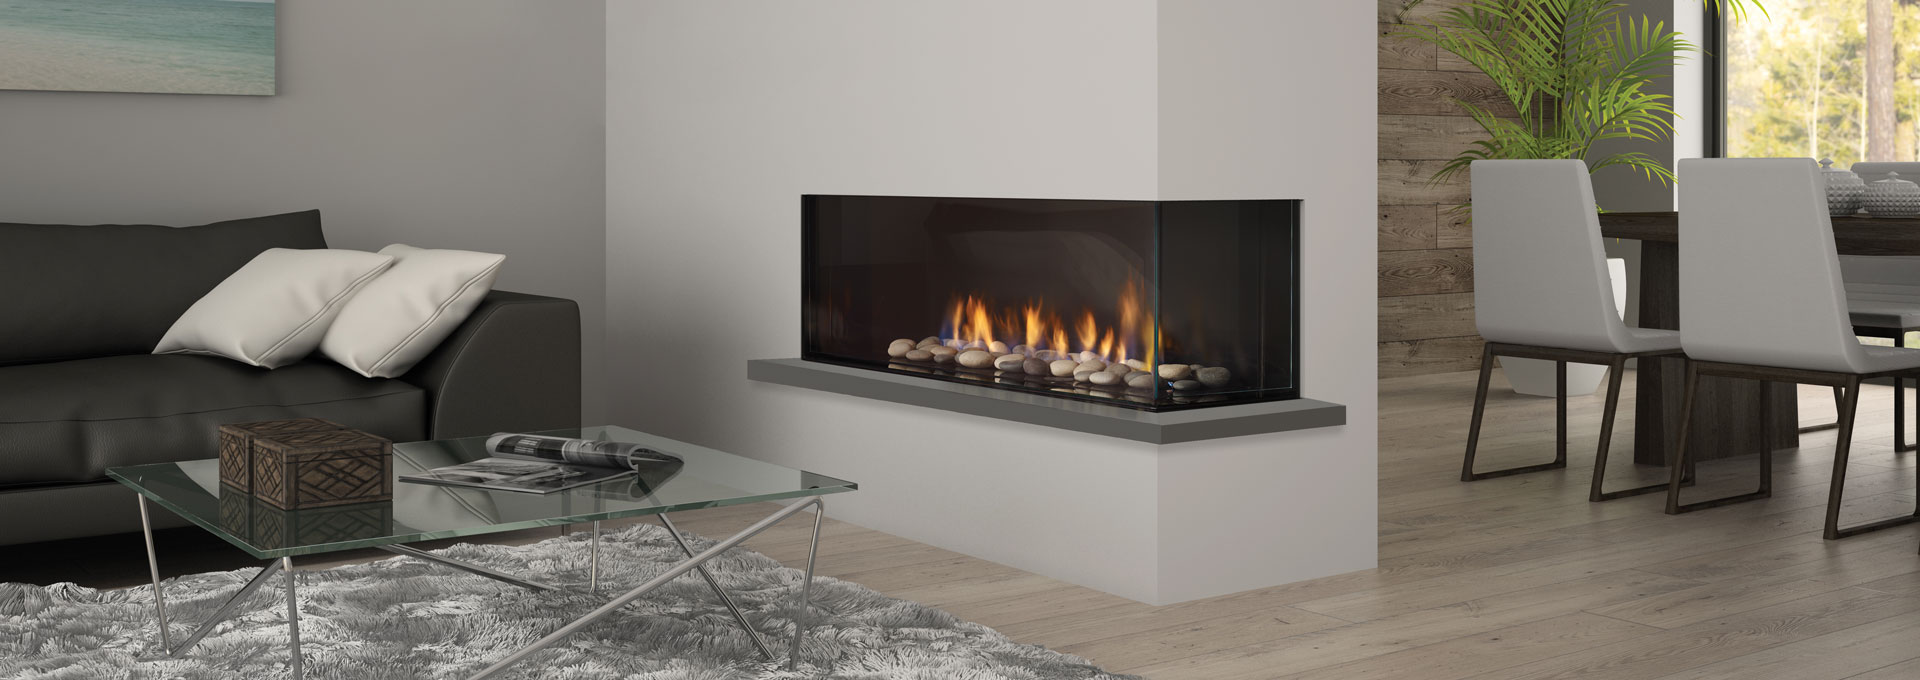 exclusive wood inserts modern fireplace burning